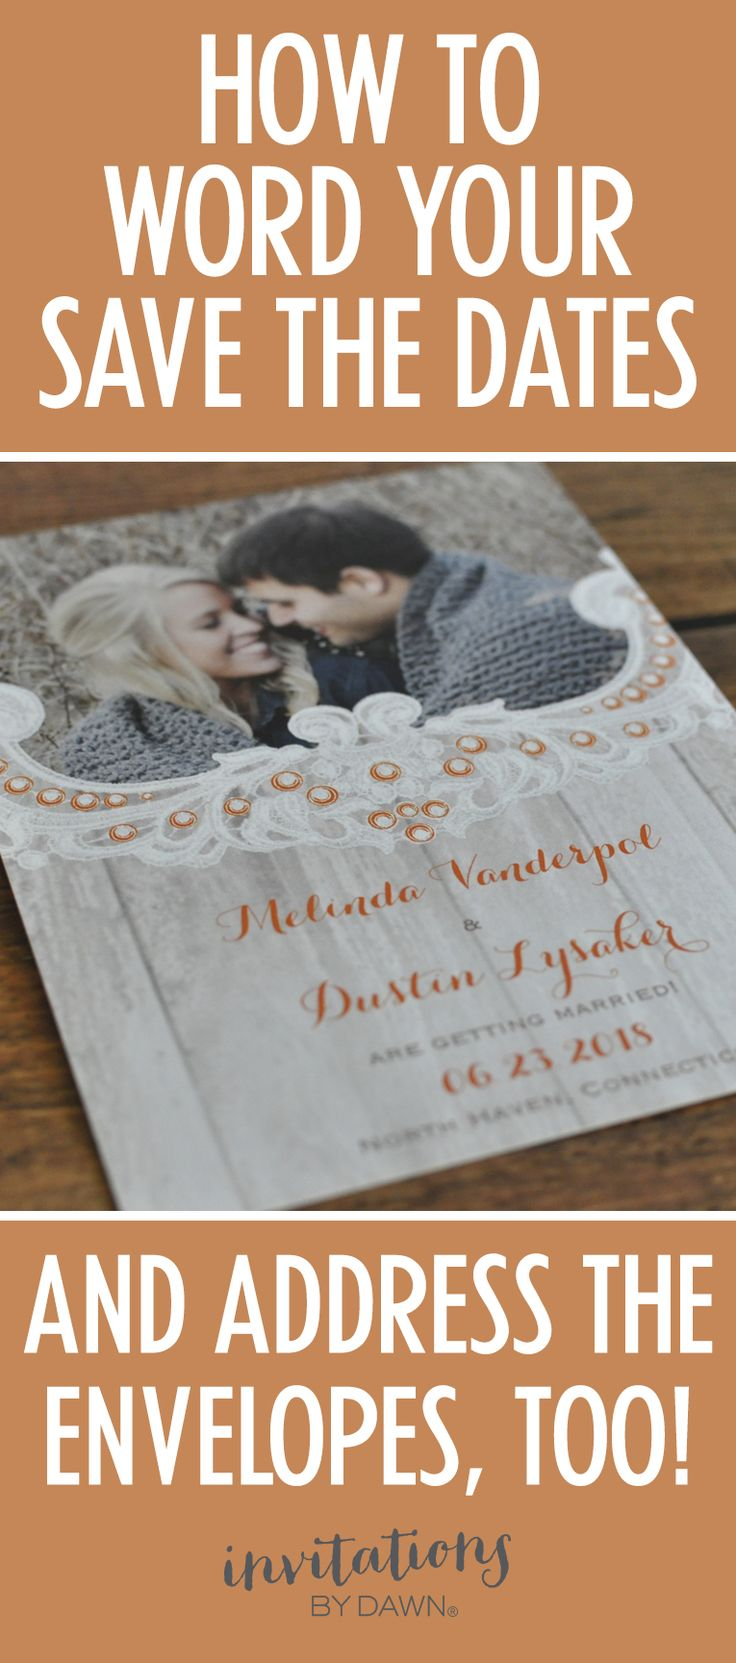 Make sure you have the correct format for addressing your save the date envelopes. Visit Invitations by Dawn blog to learn how!